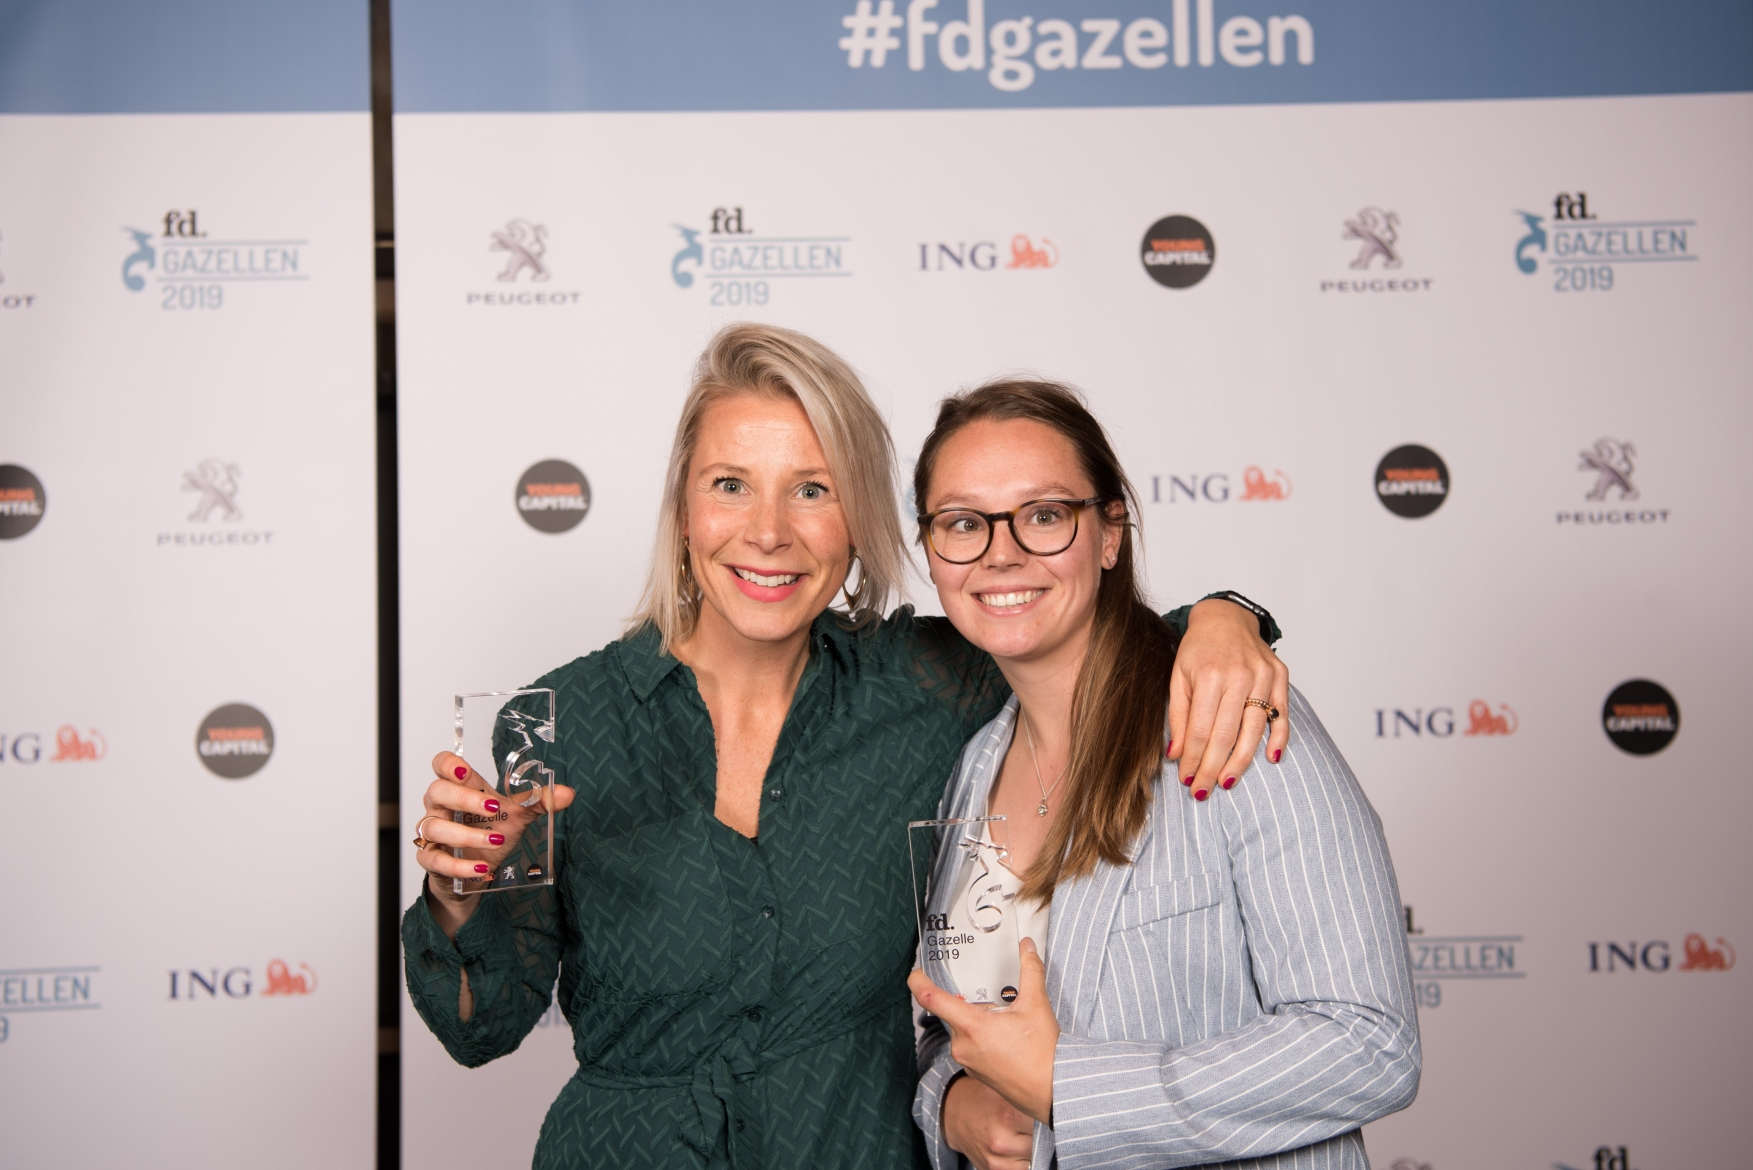 Derde FD Gazellen award voor Dutch Food Concepts